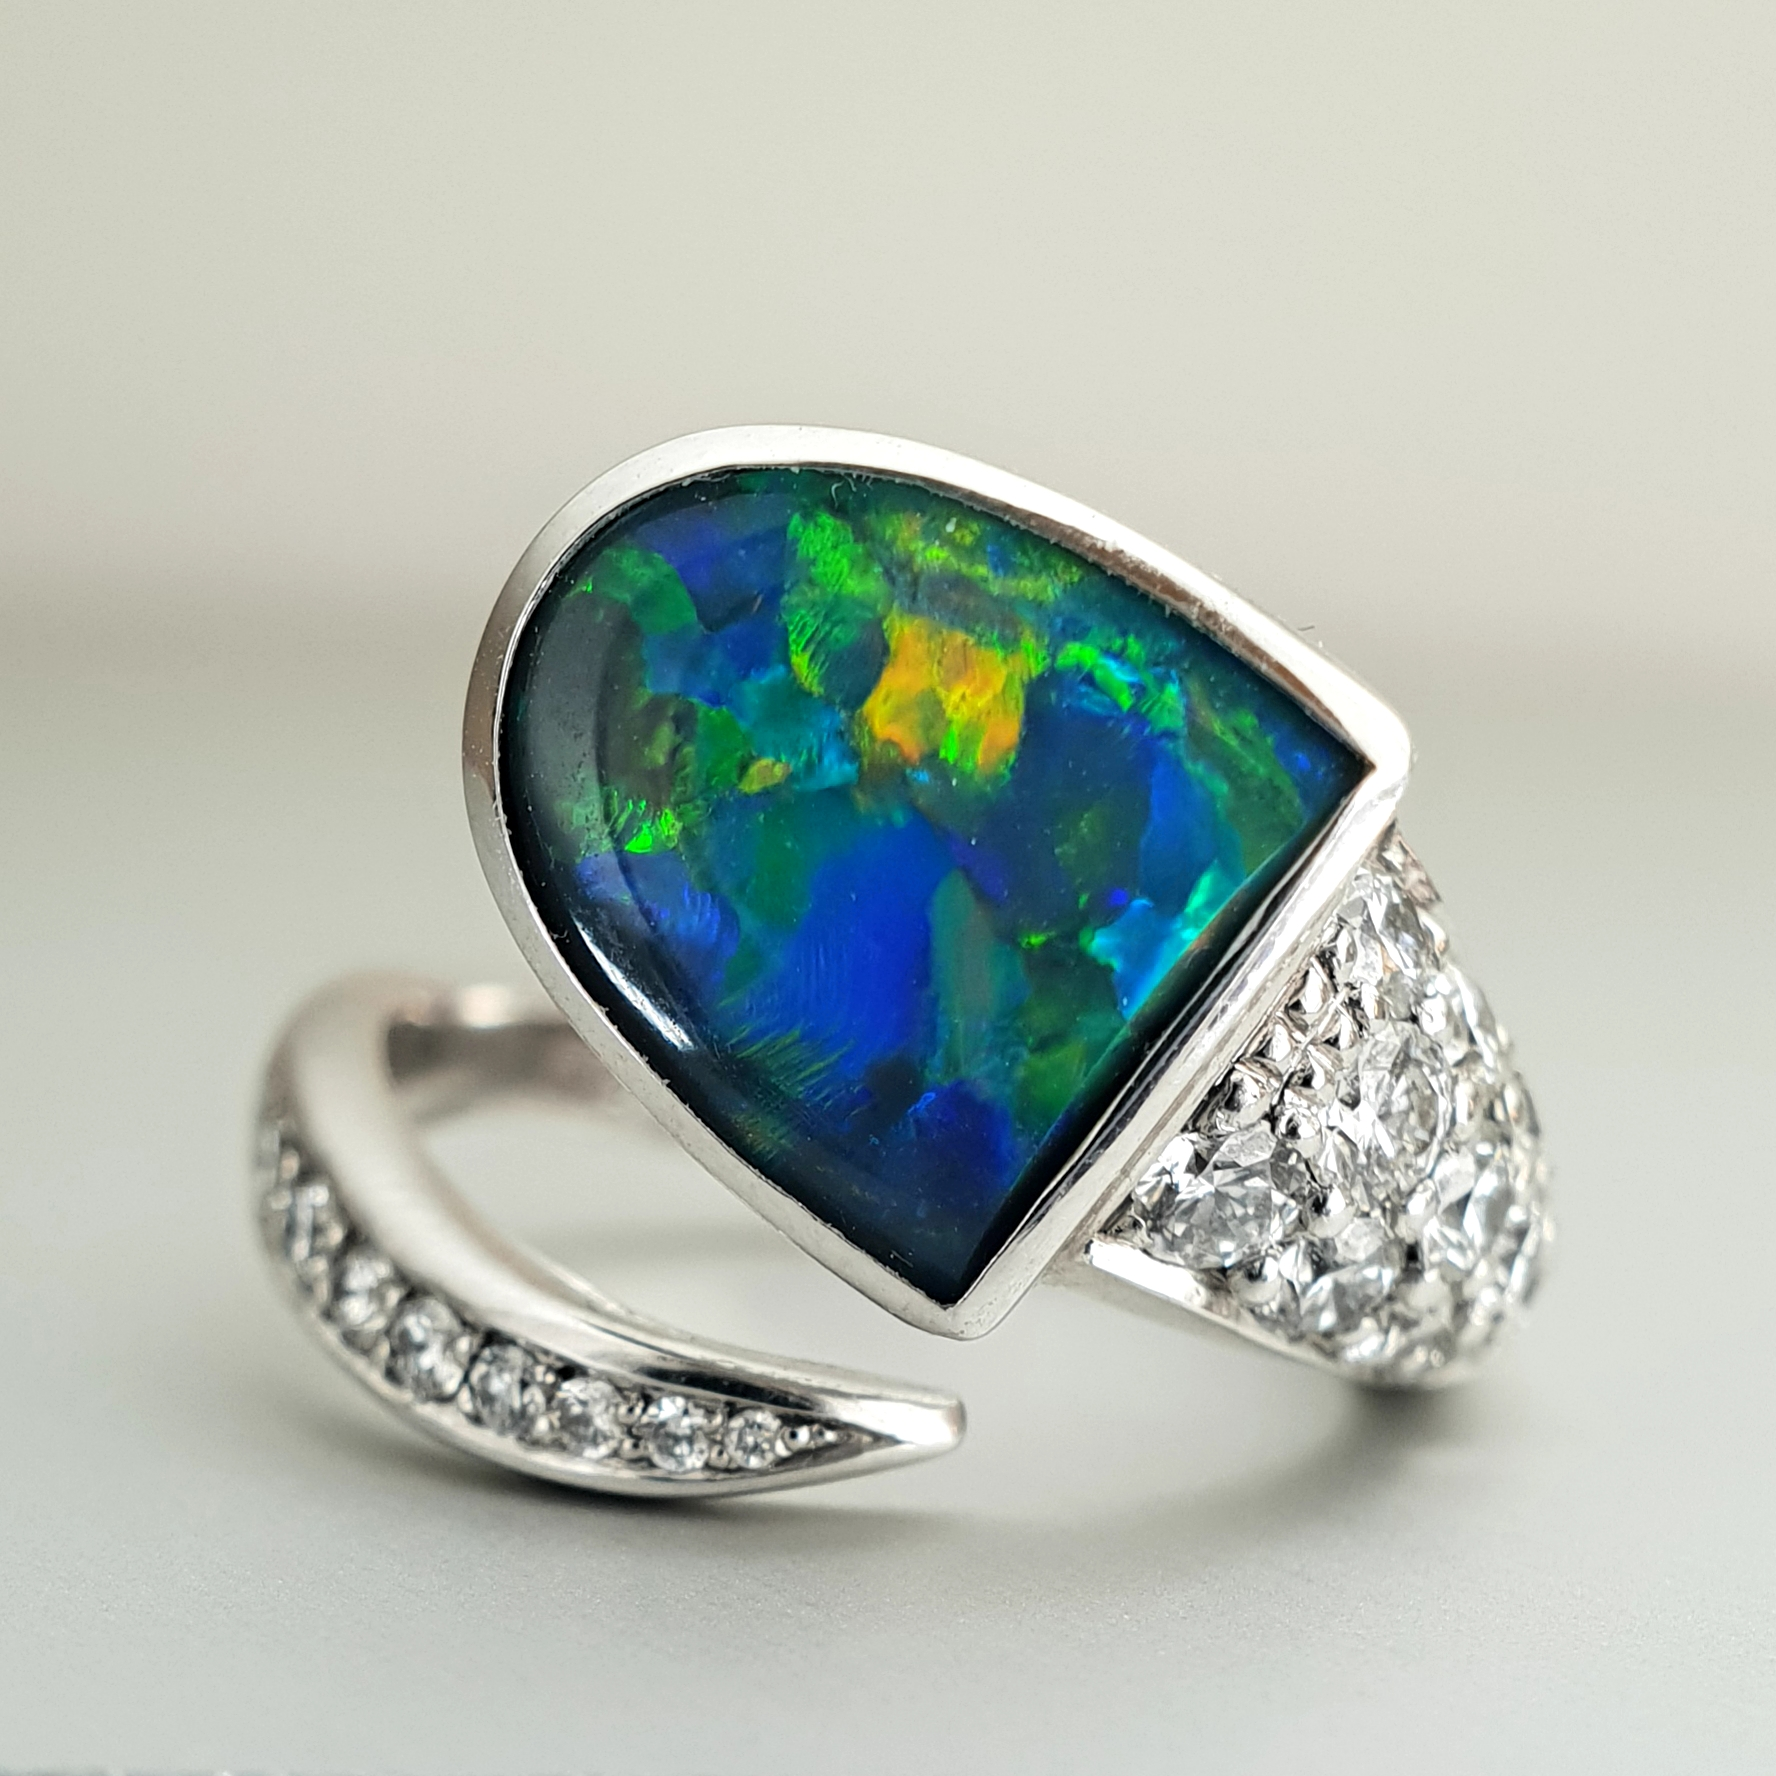 'Couture' Black Opal Ring in 18ct White Gold